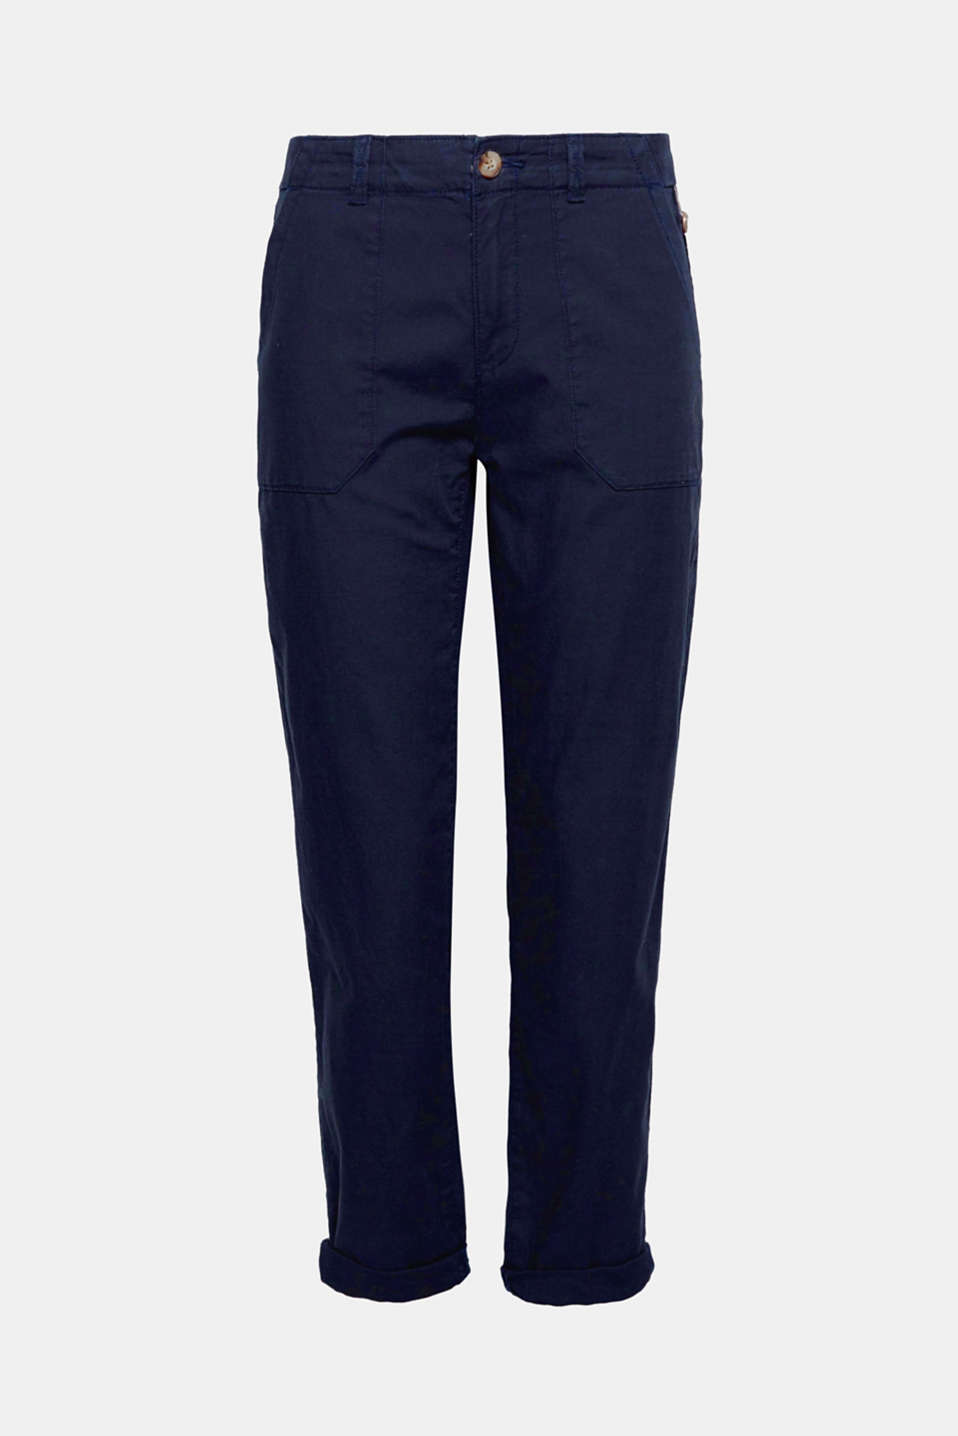 These trousers are an unfussy summer piece made of pure cotton with utility style patch pockets.